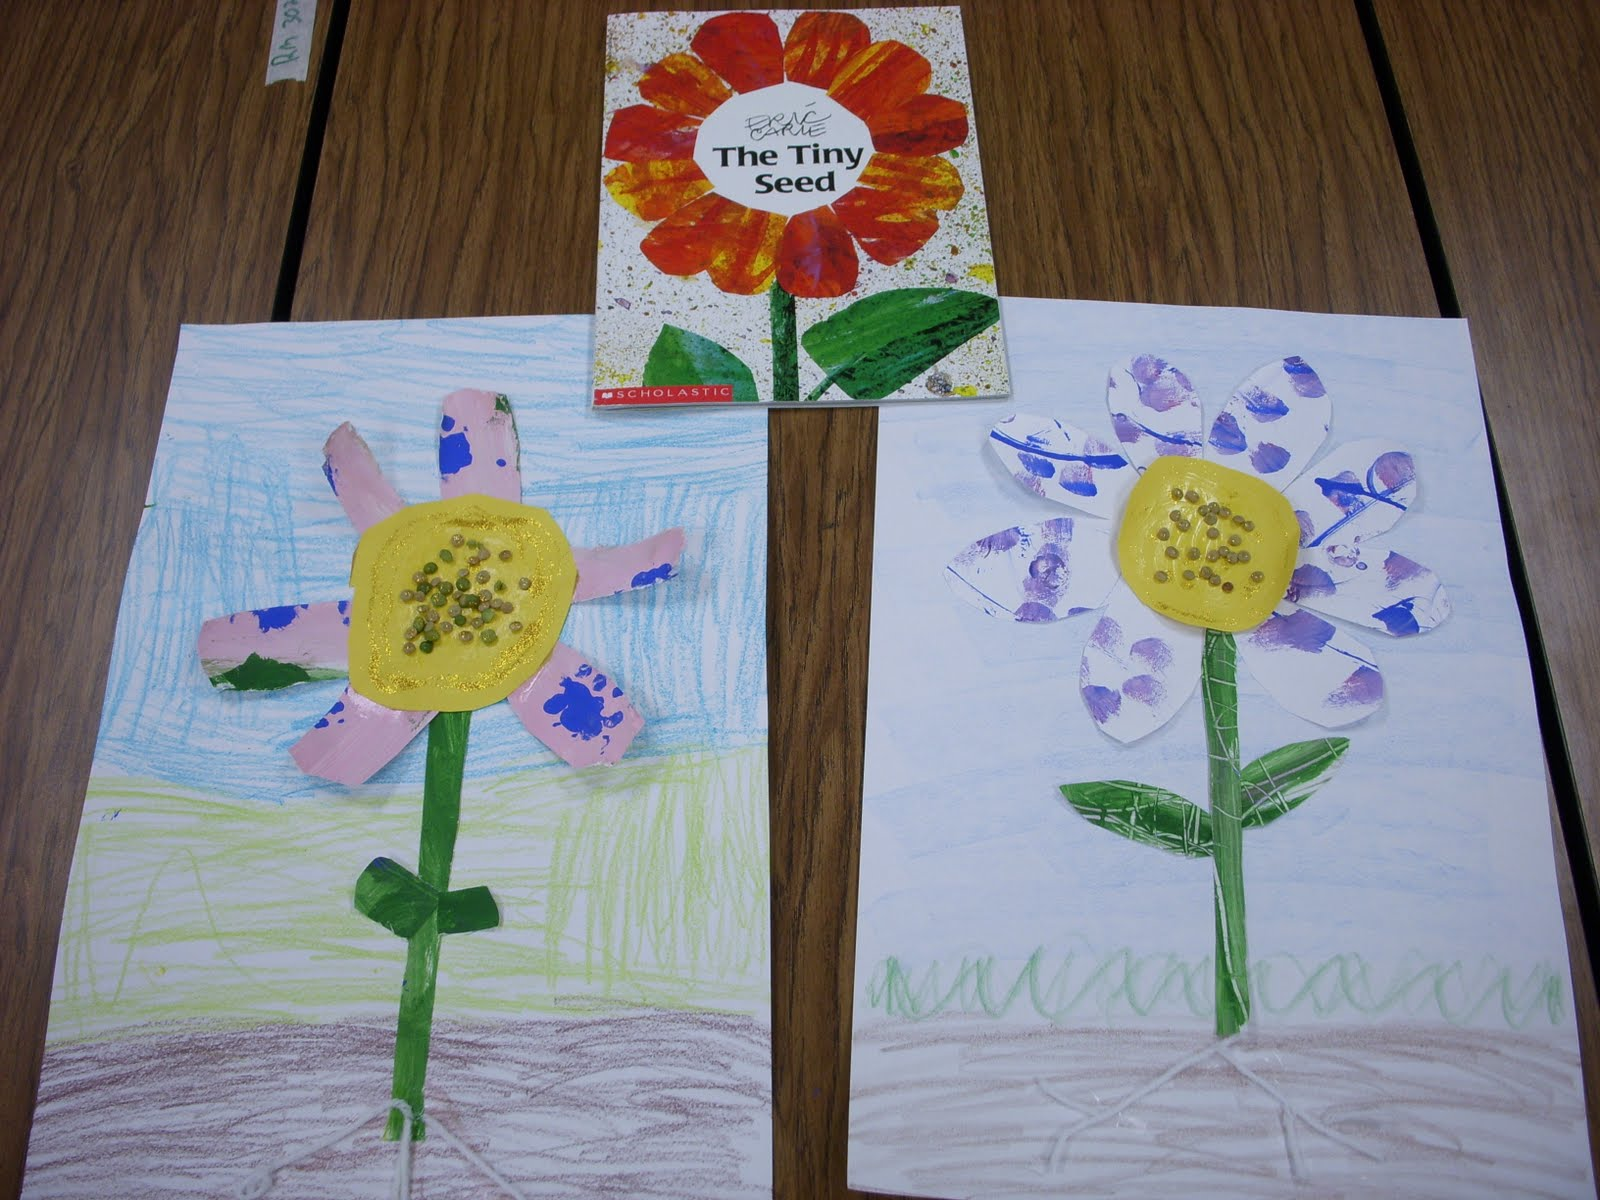 Kinder Garden: Live, Laugh, Learn: Eric Carle Projects